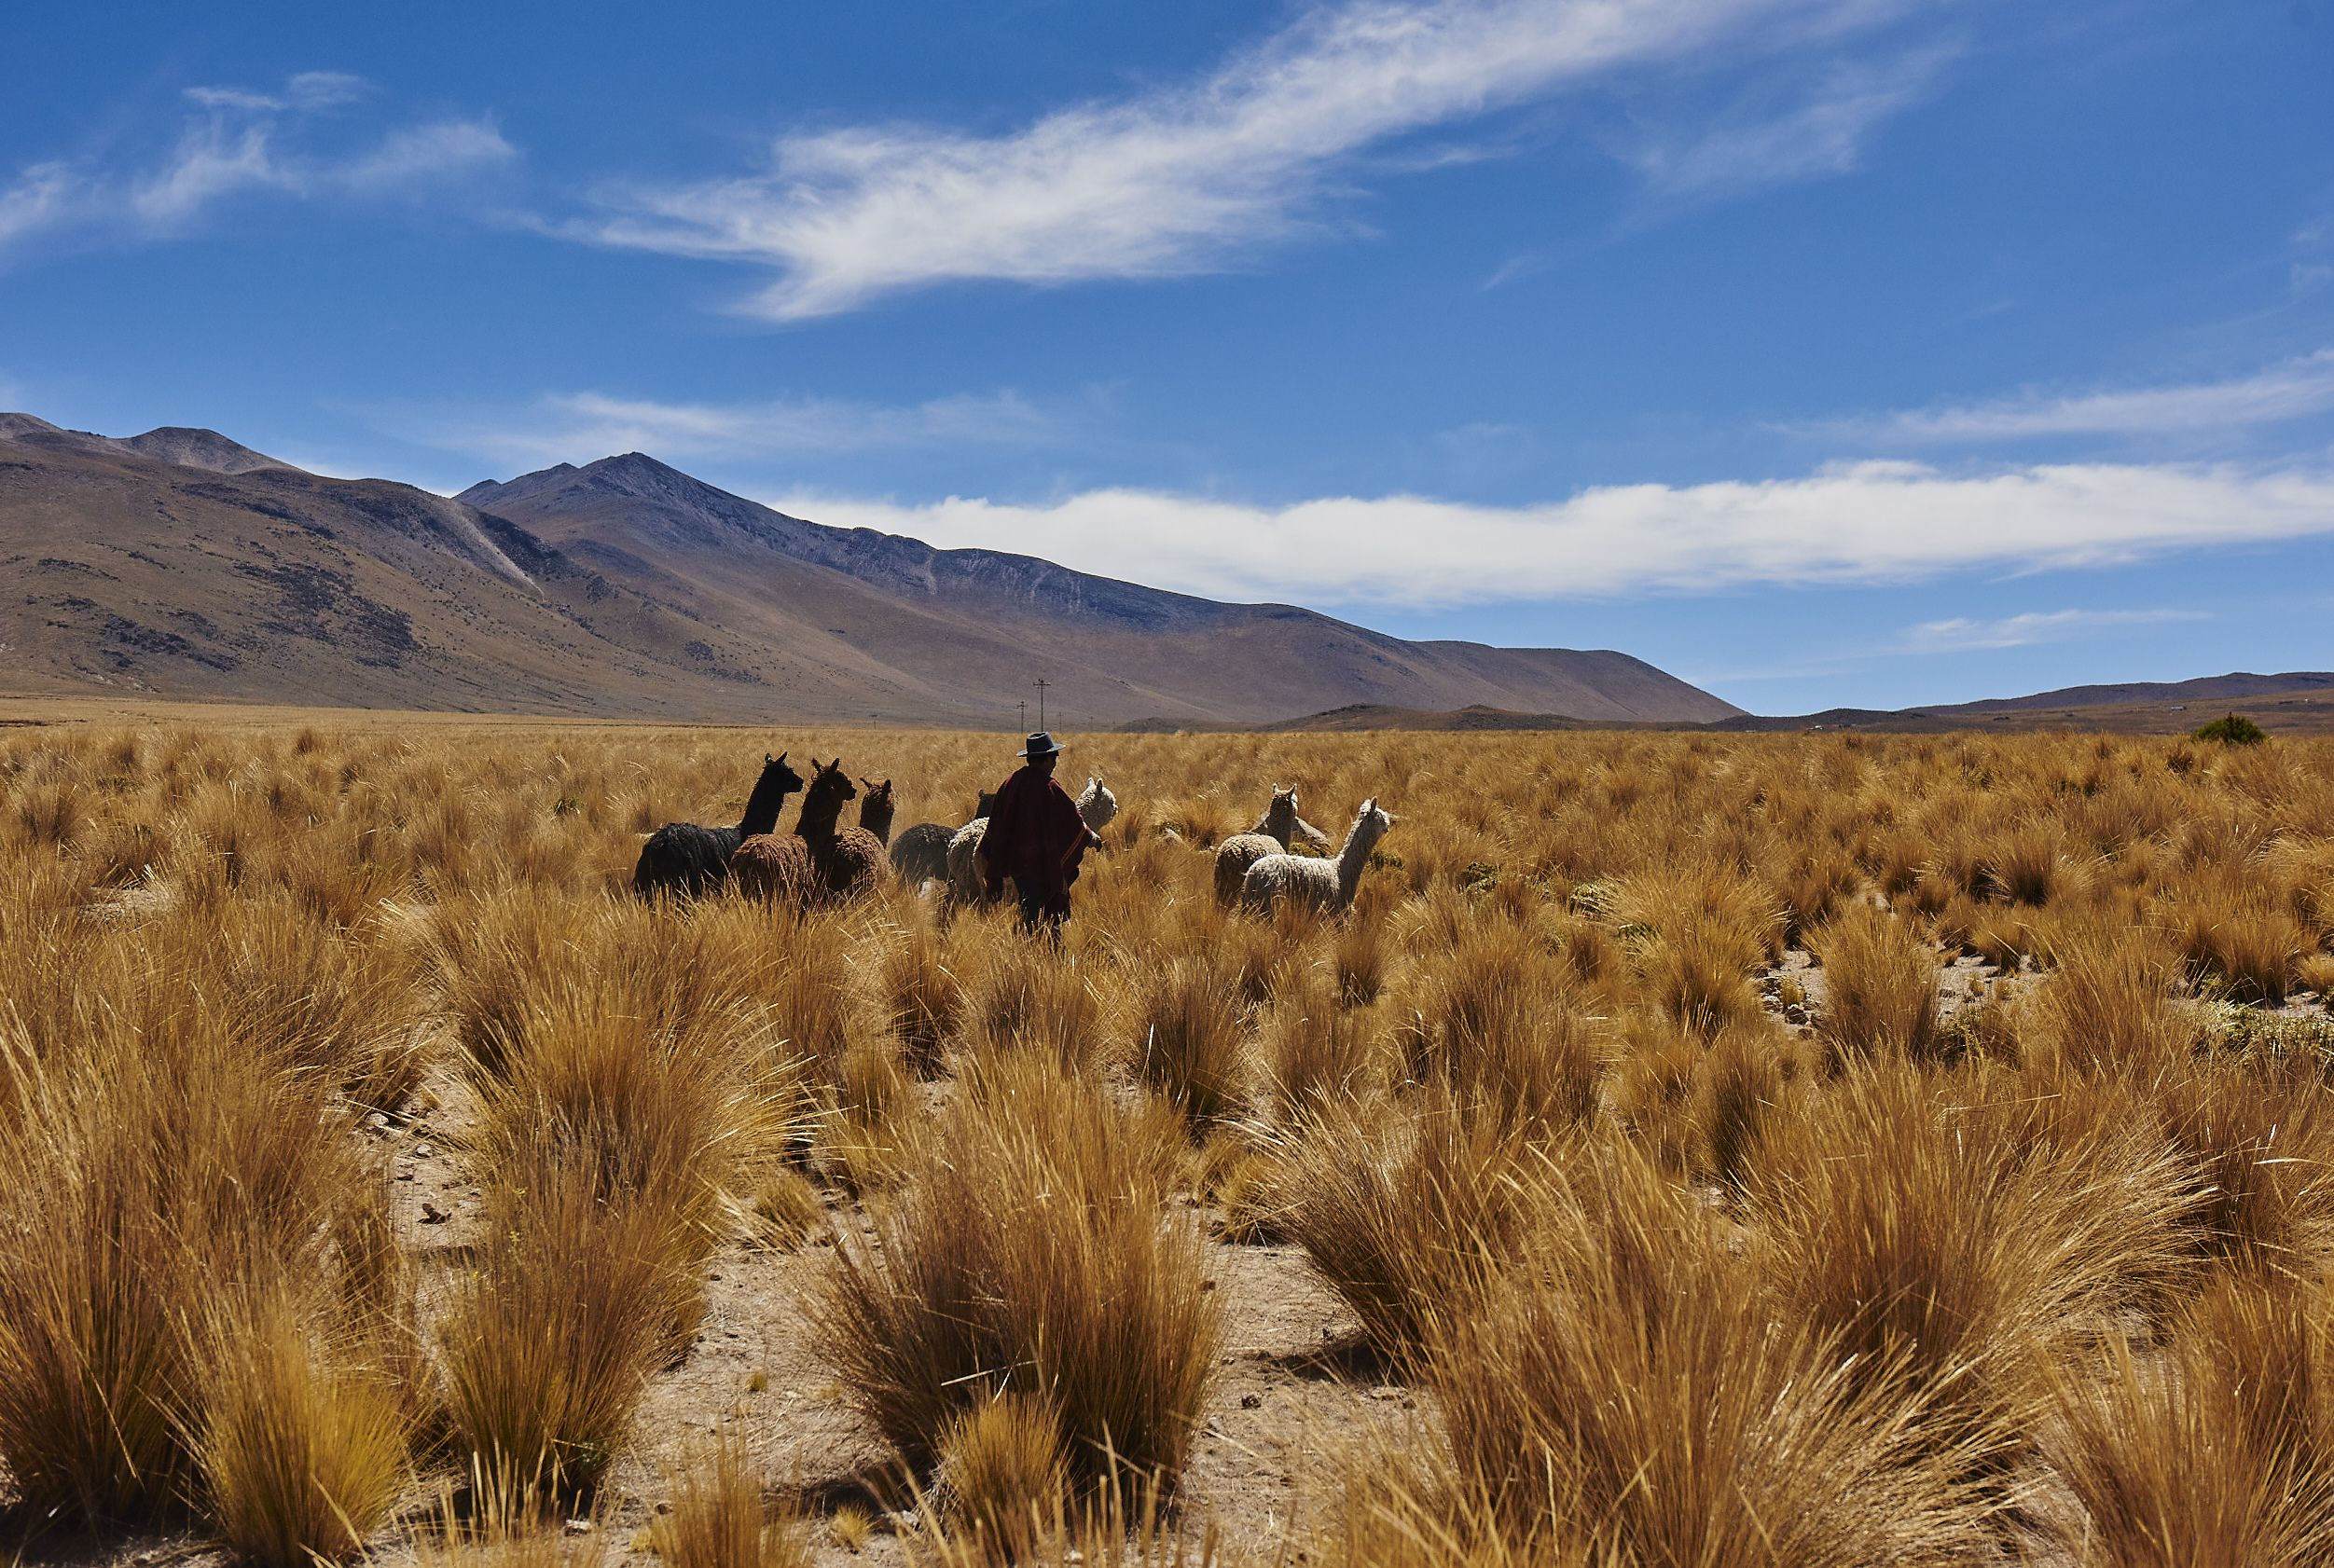 photo of man and heard of alpacas in grass land with mountains and blue sky in background